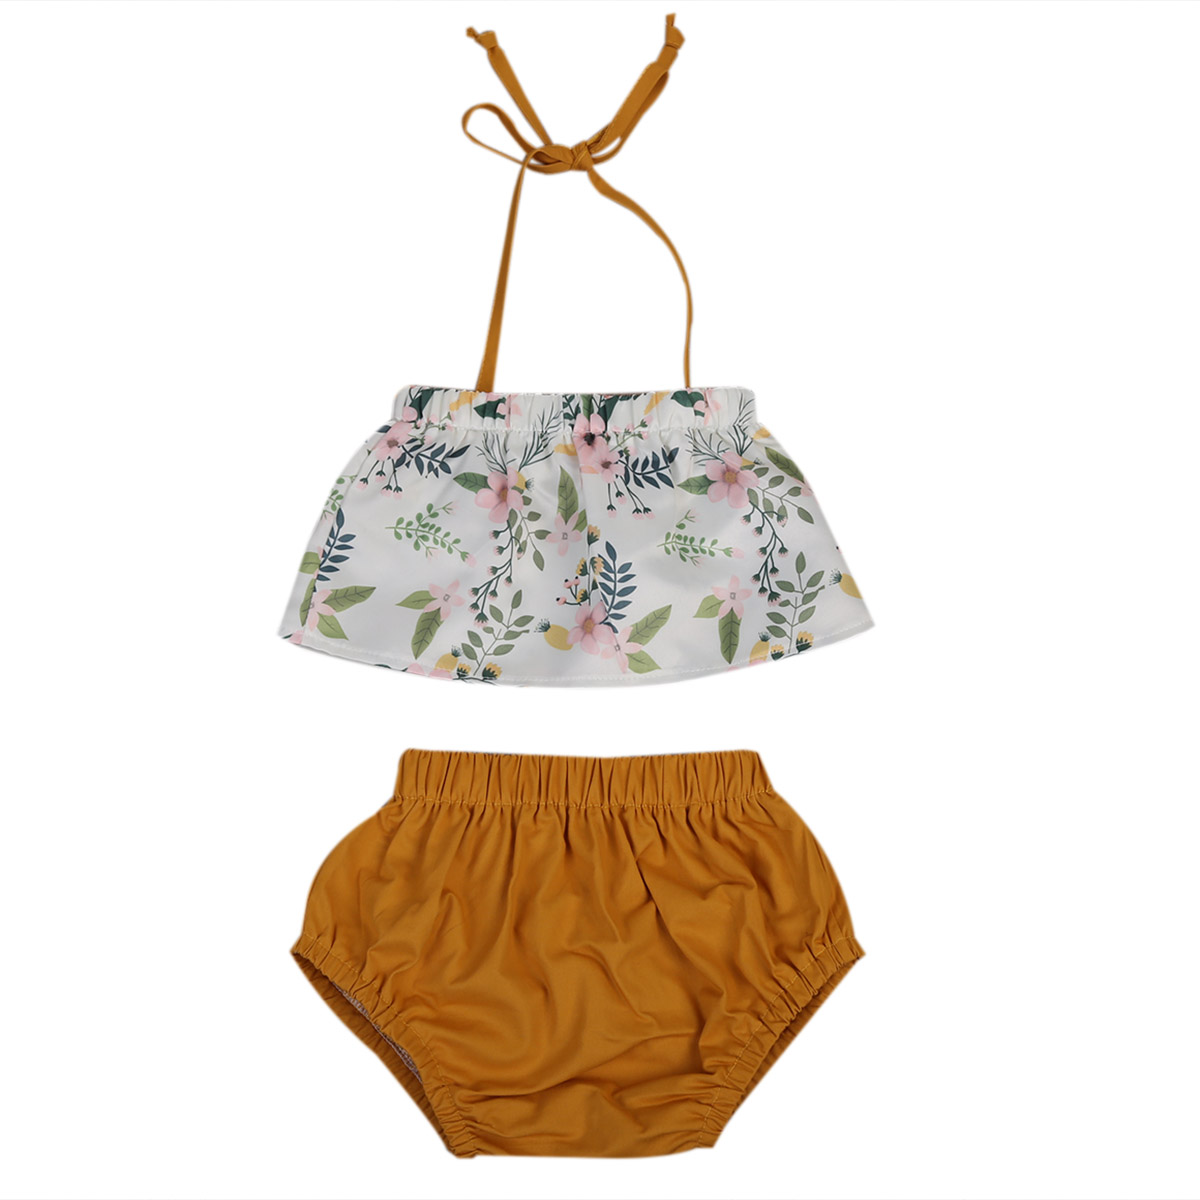 Summer 2017 Newborn Kid Toddler Baby Girl Floral  Belt Hater Top+Triangle shorts Outfit Set Clothes